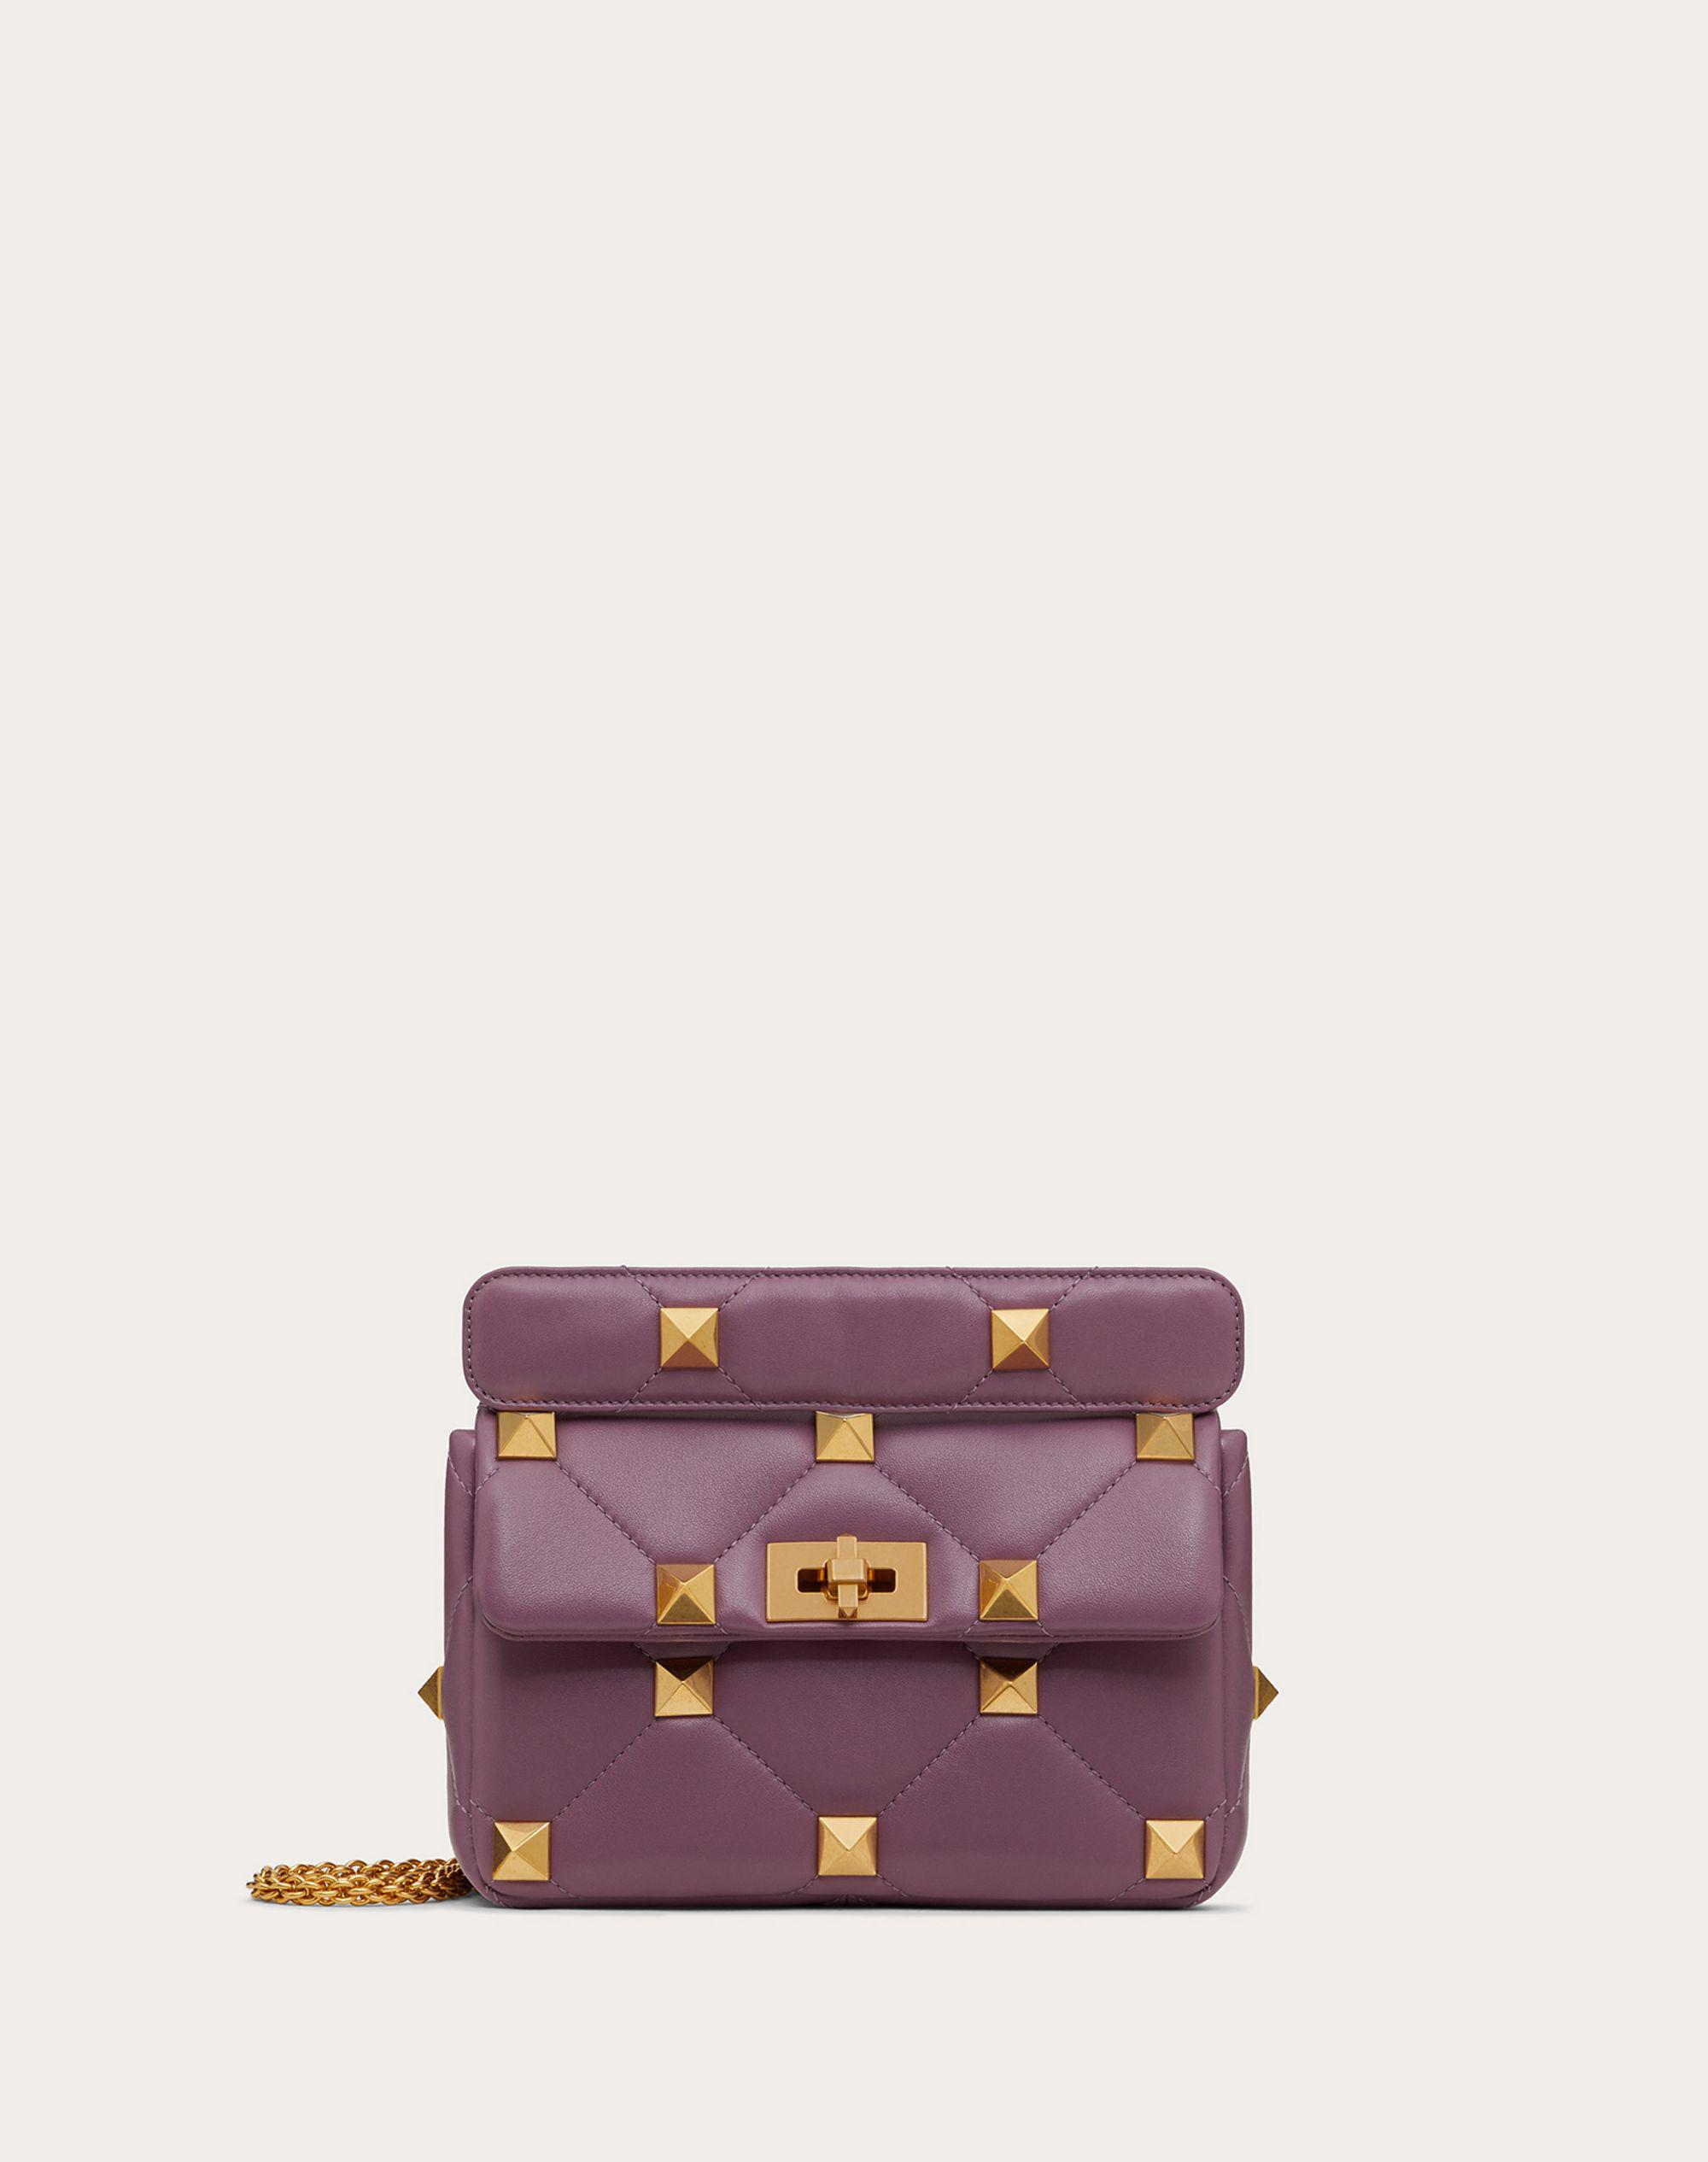 Medium Roman Stud The Shoulder Bag in Nappa with Chain